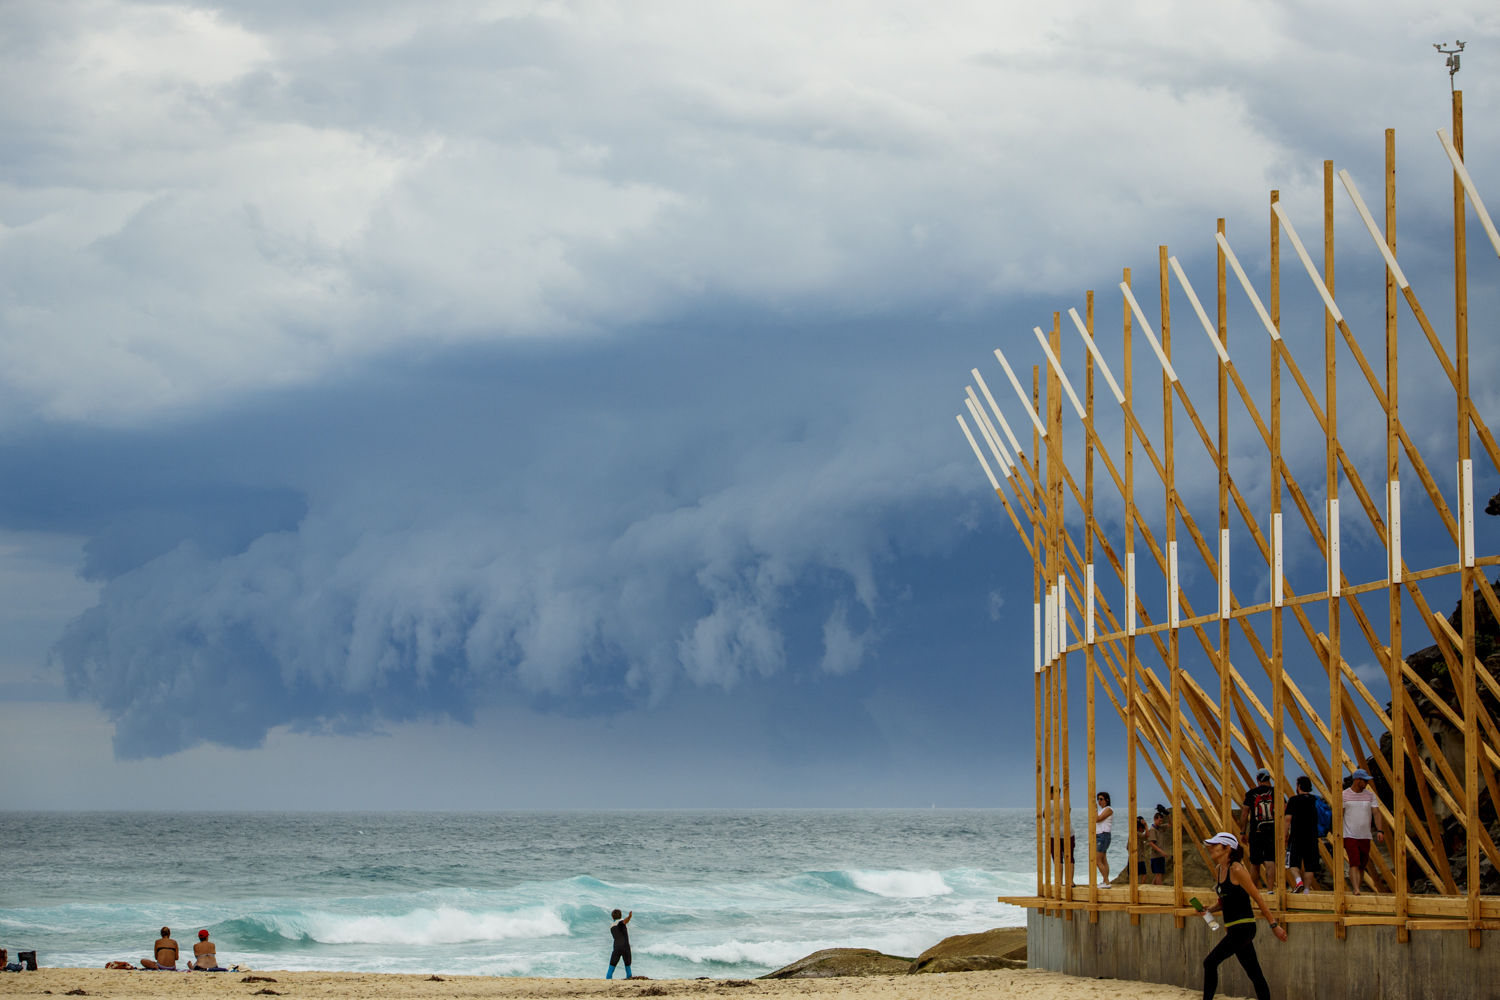 Mano Ponnambalam, repetitive structures, Sculpture by the Sea, Bondi 2015. Photo Jessica Wyld